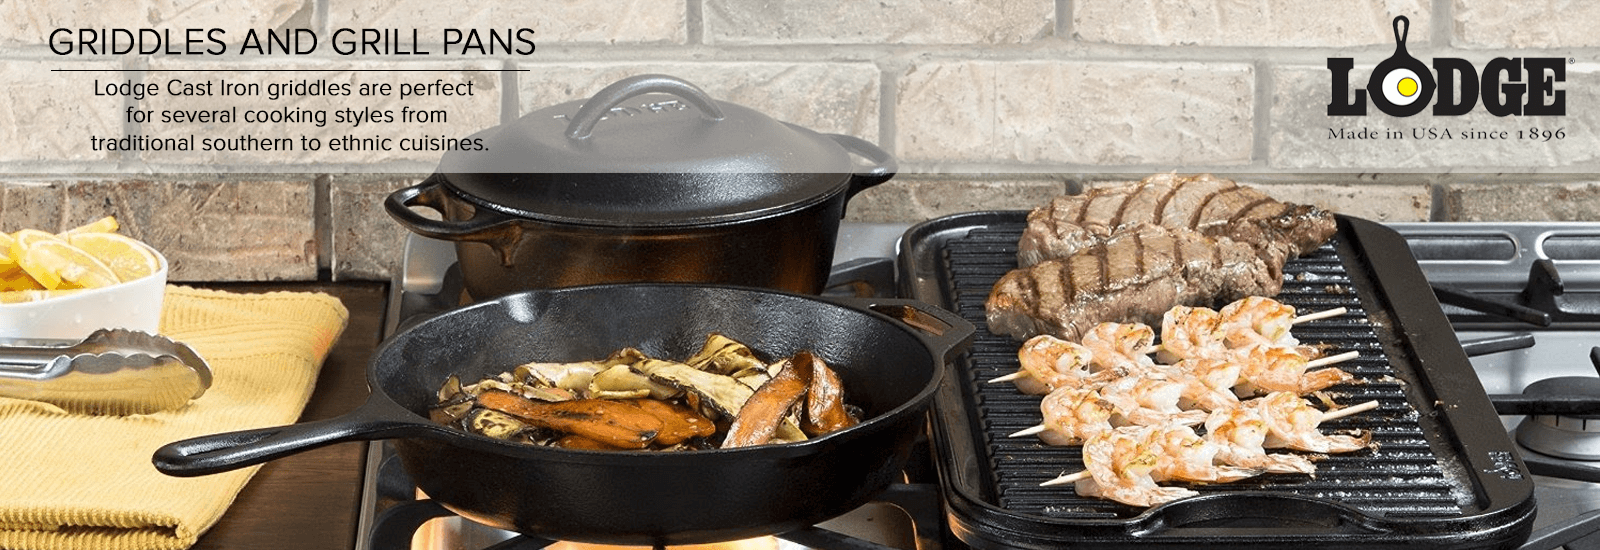 Lodge Griddles and Grill pans